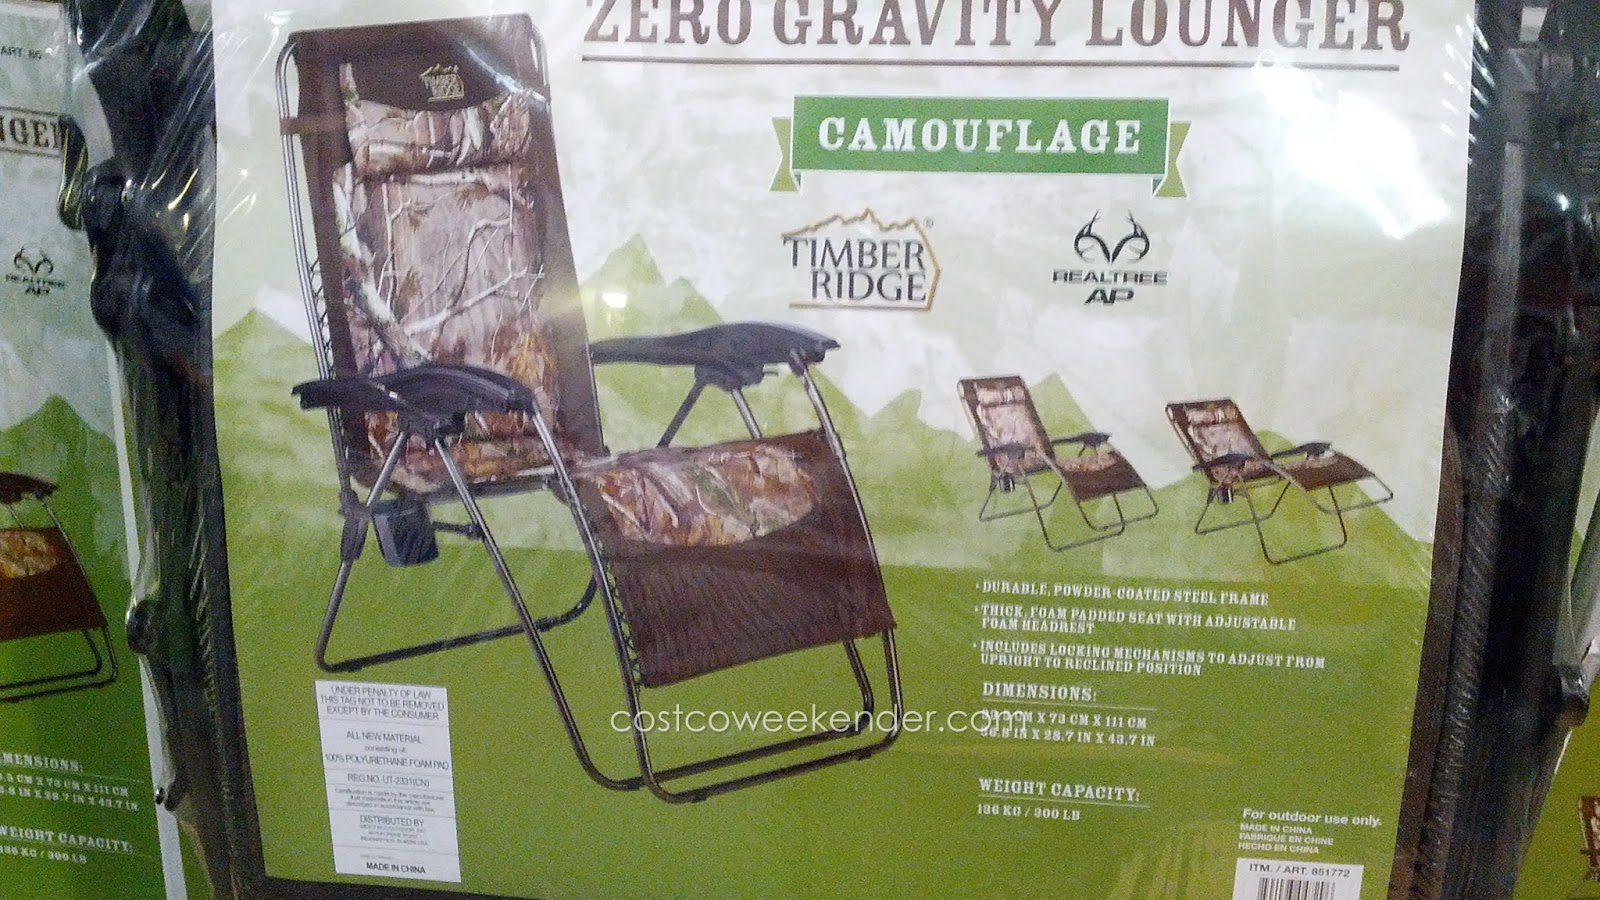 Zero Gravity Lounge Chair Costco Wing Chairs Slipcovers Timber Ridge Lounger Camouflage